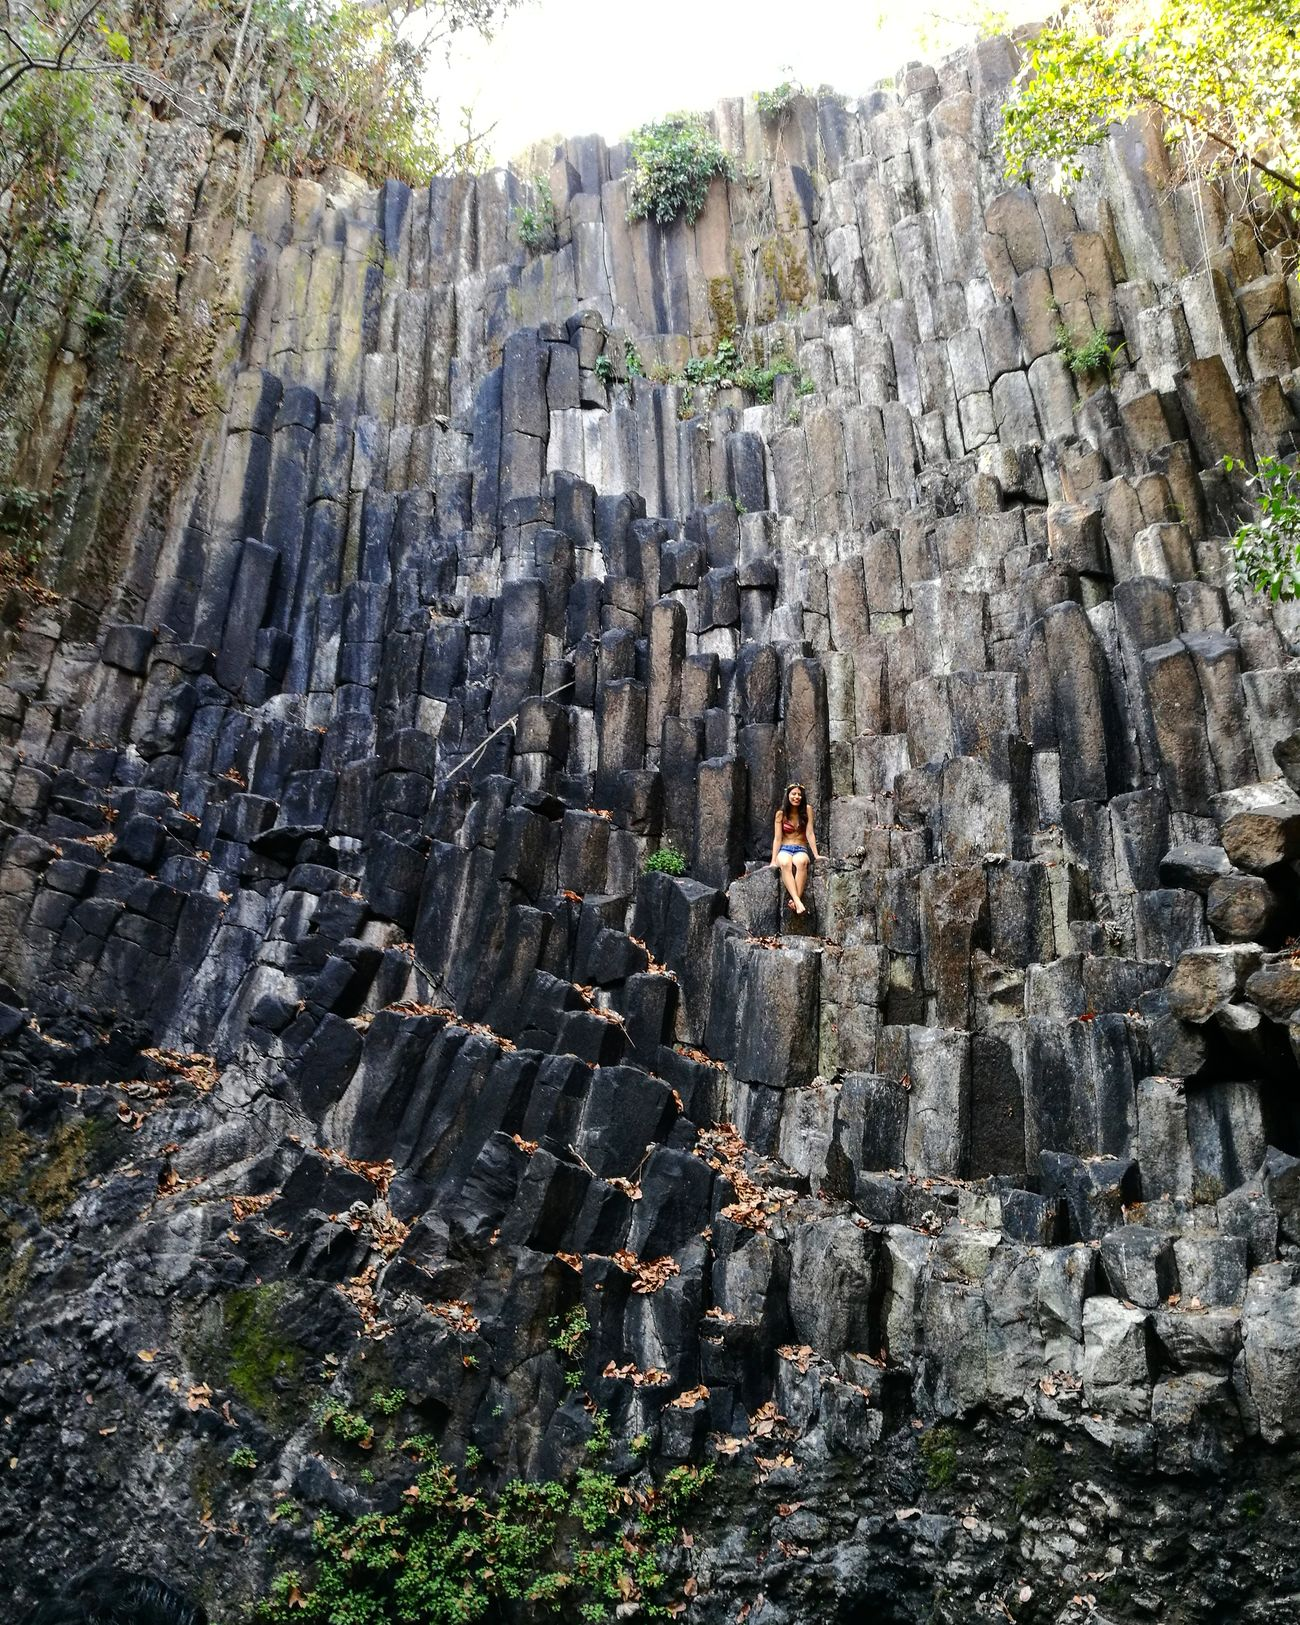 Basalt columns at Los Tercios, Suchitoto. Nature Outdoors Suchitoto Volcanoes El Salvador Impresionante Lava Rocks